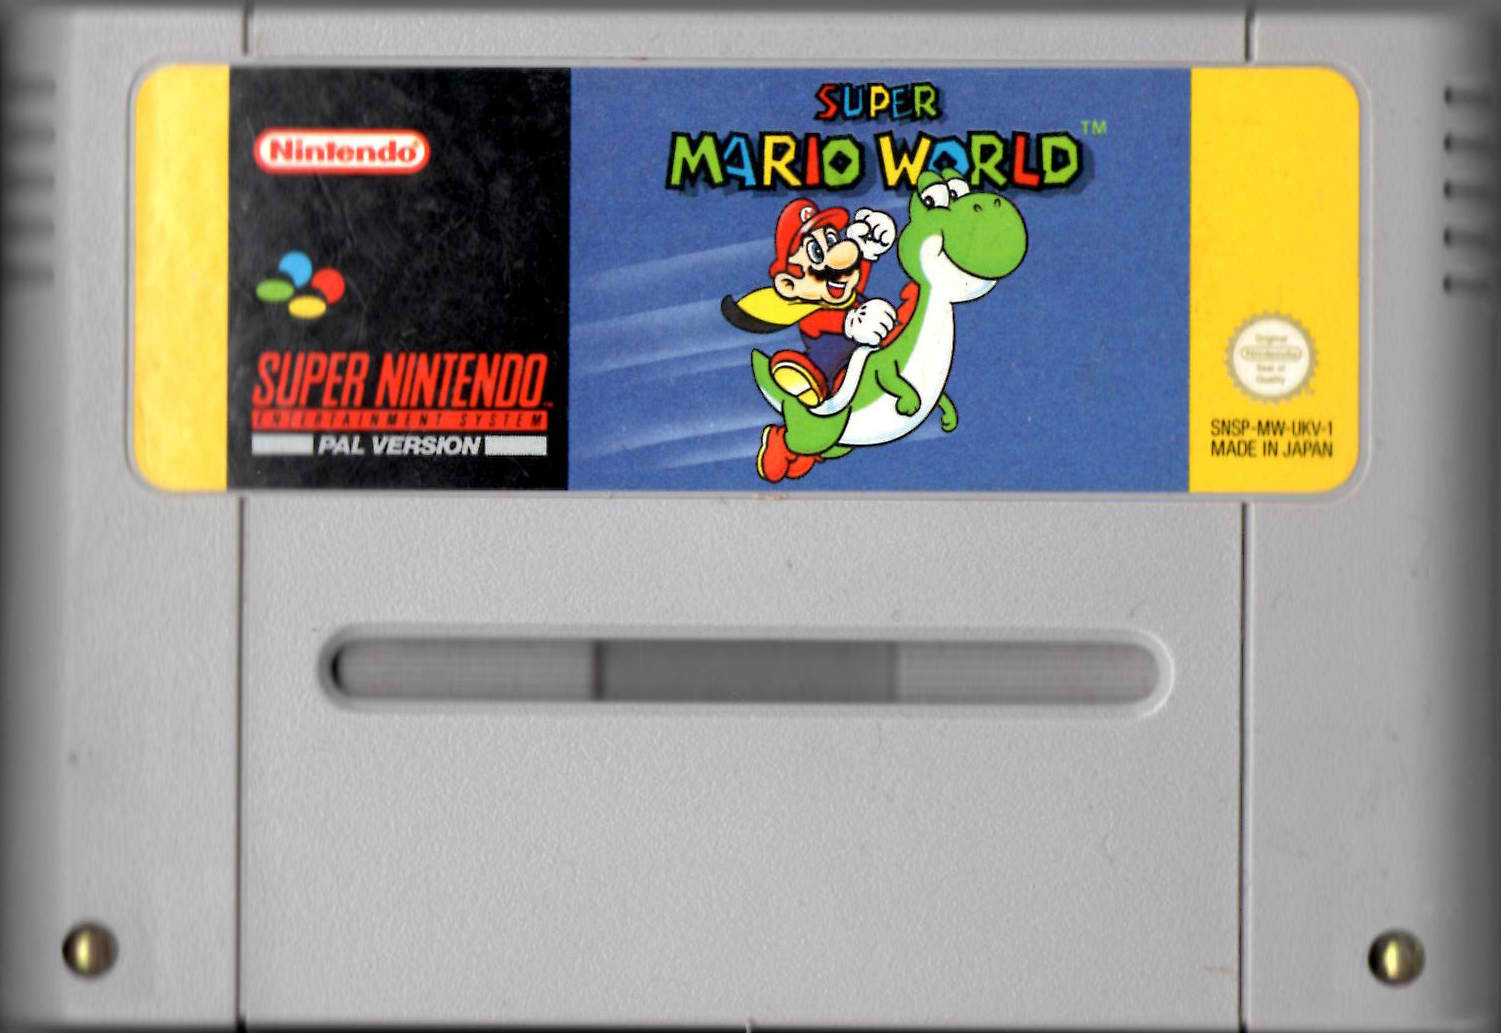 SNES Super Mario World cartridge